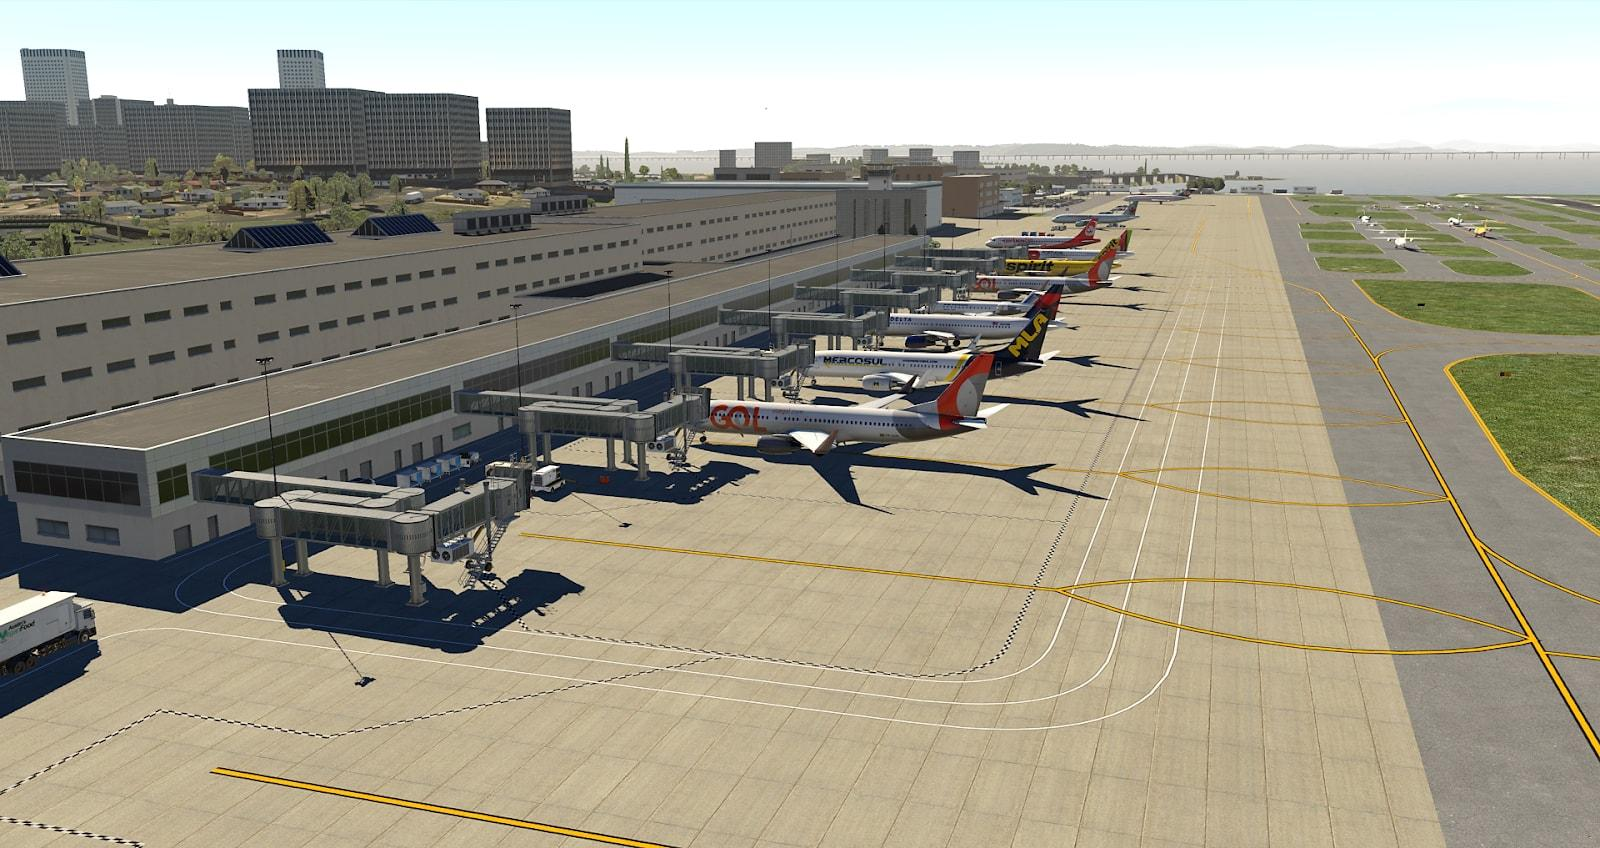 SBRJ - Santos Dumont (Default Library XP11 20 up) - Scenery